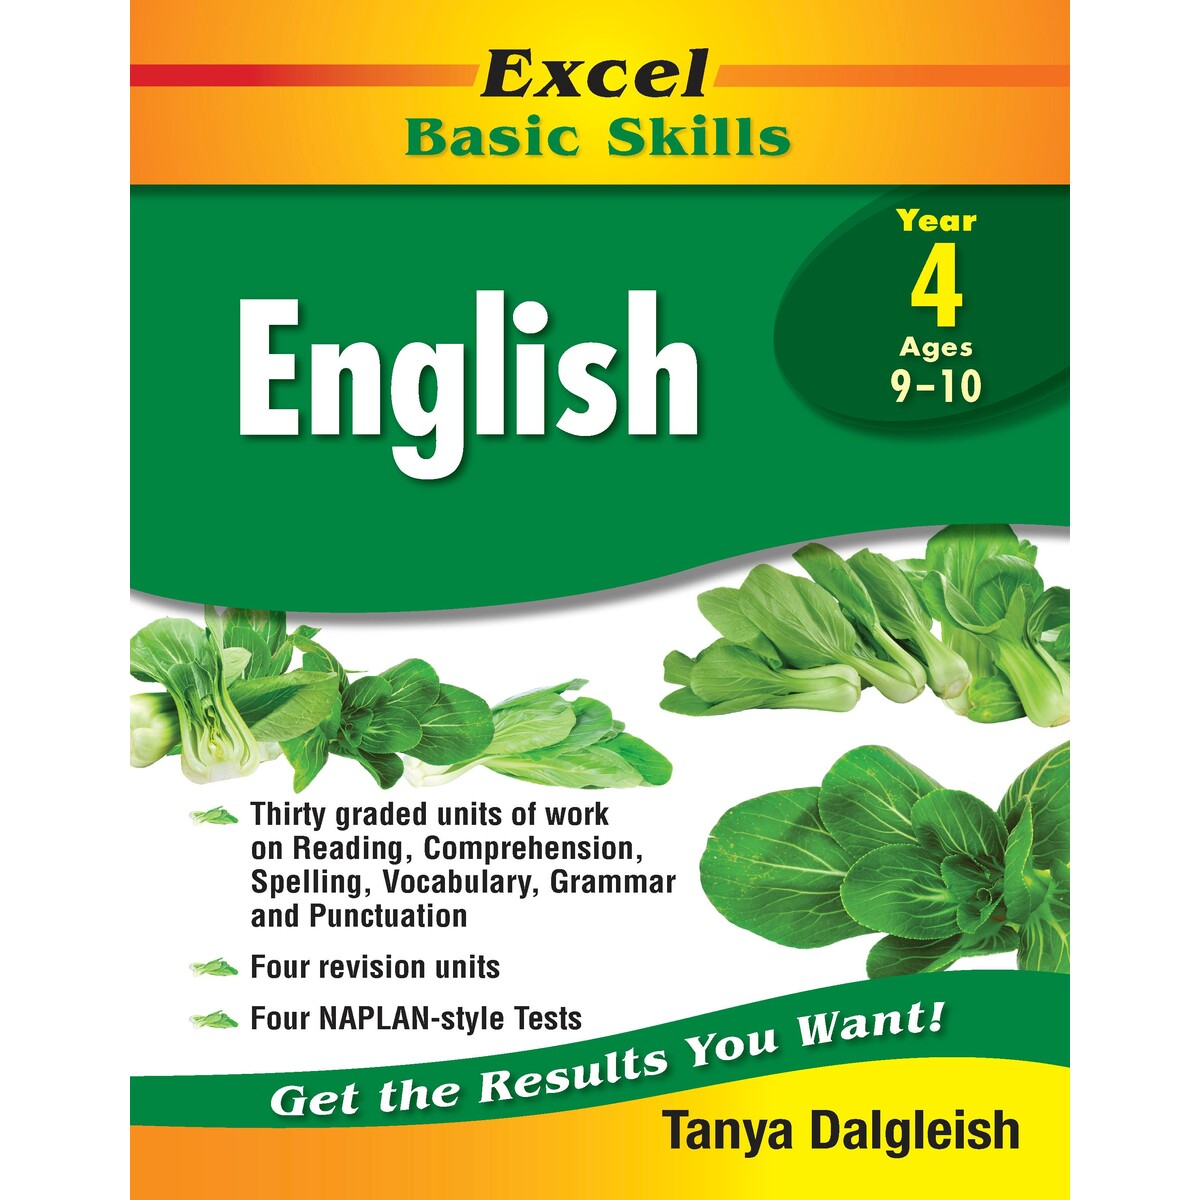 Excel Basic Skills Workbook English Year 4